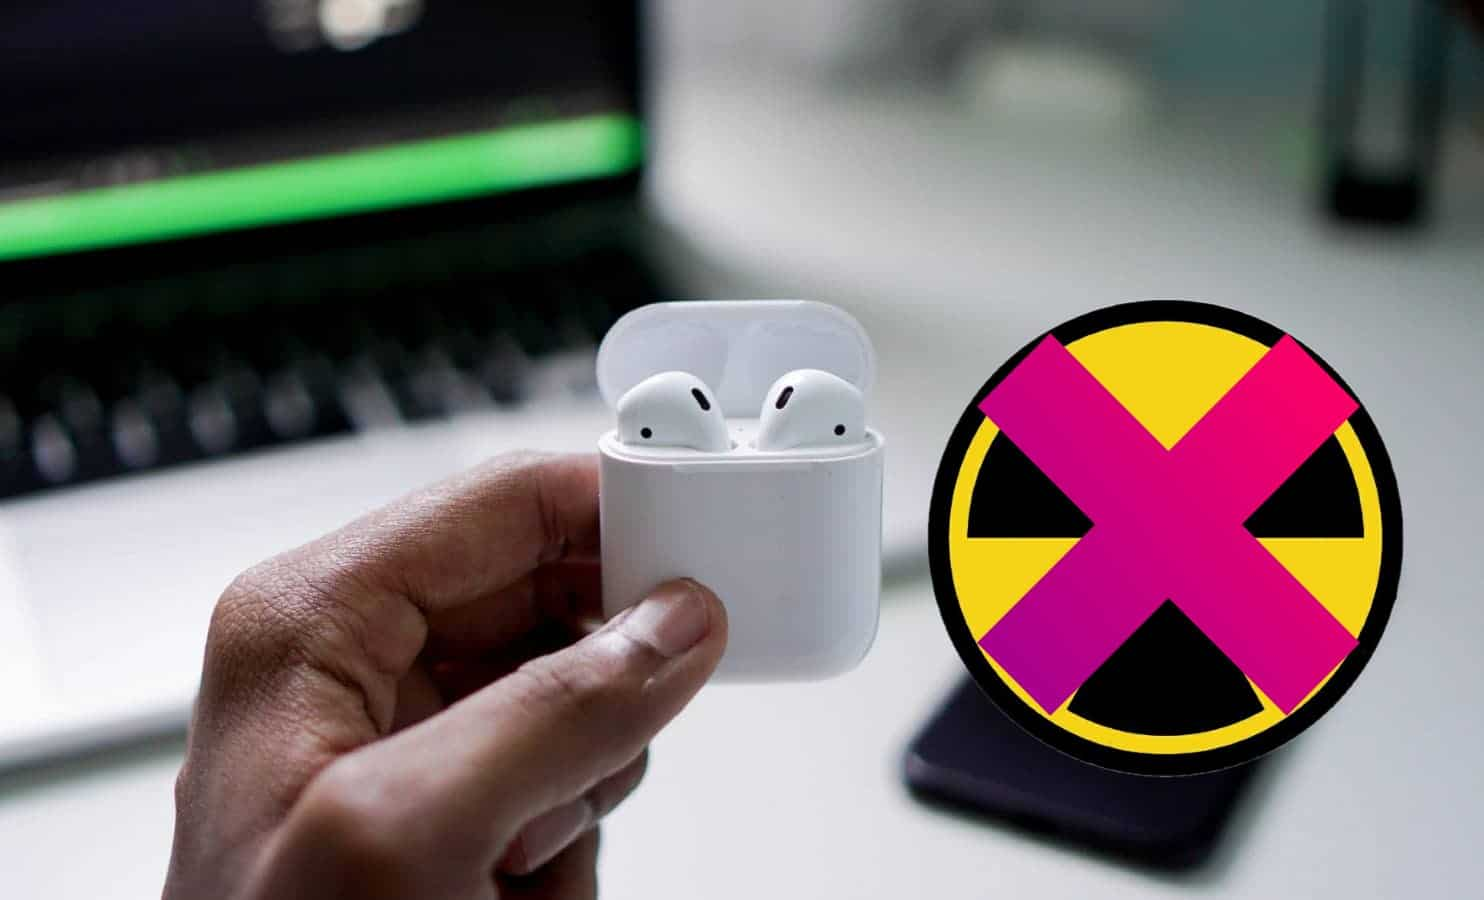 can airpods give you cancer? no